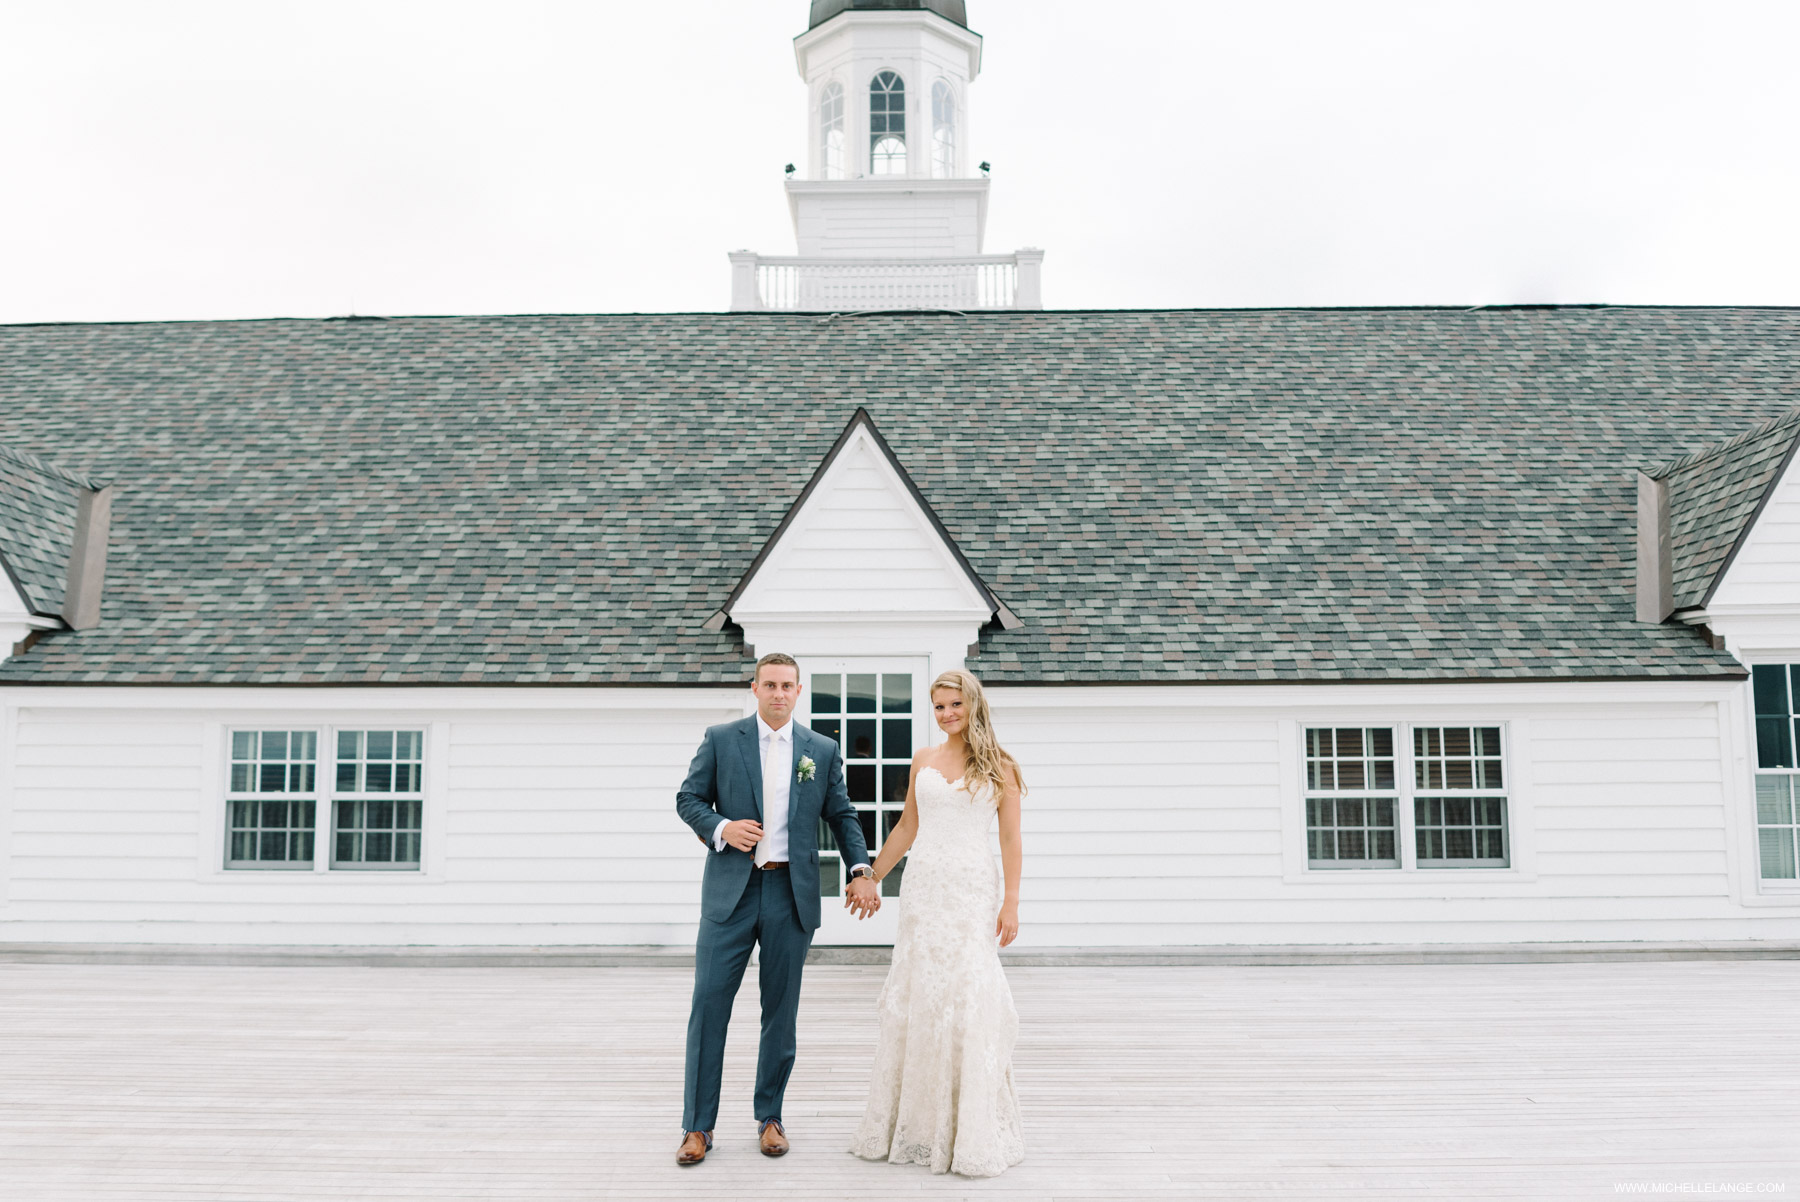 Sagamore Wedding by Michelle Lange Photography-25.jpg